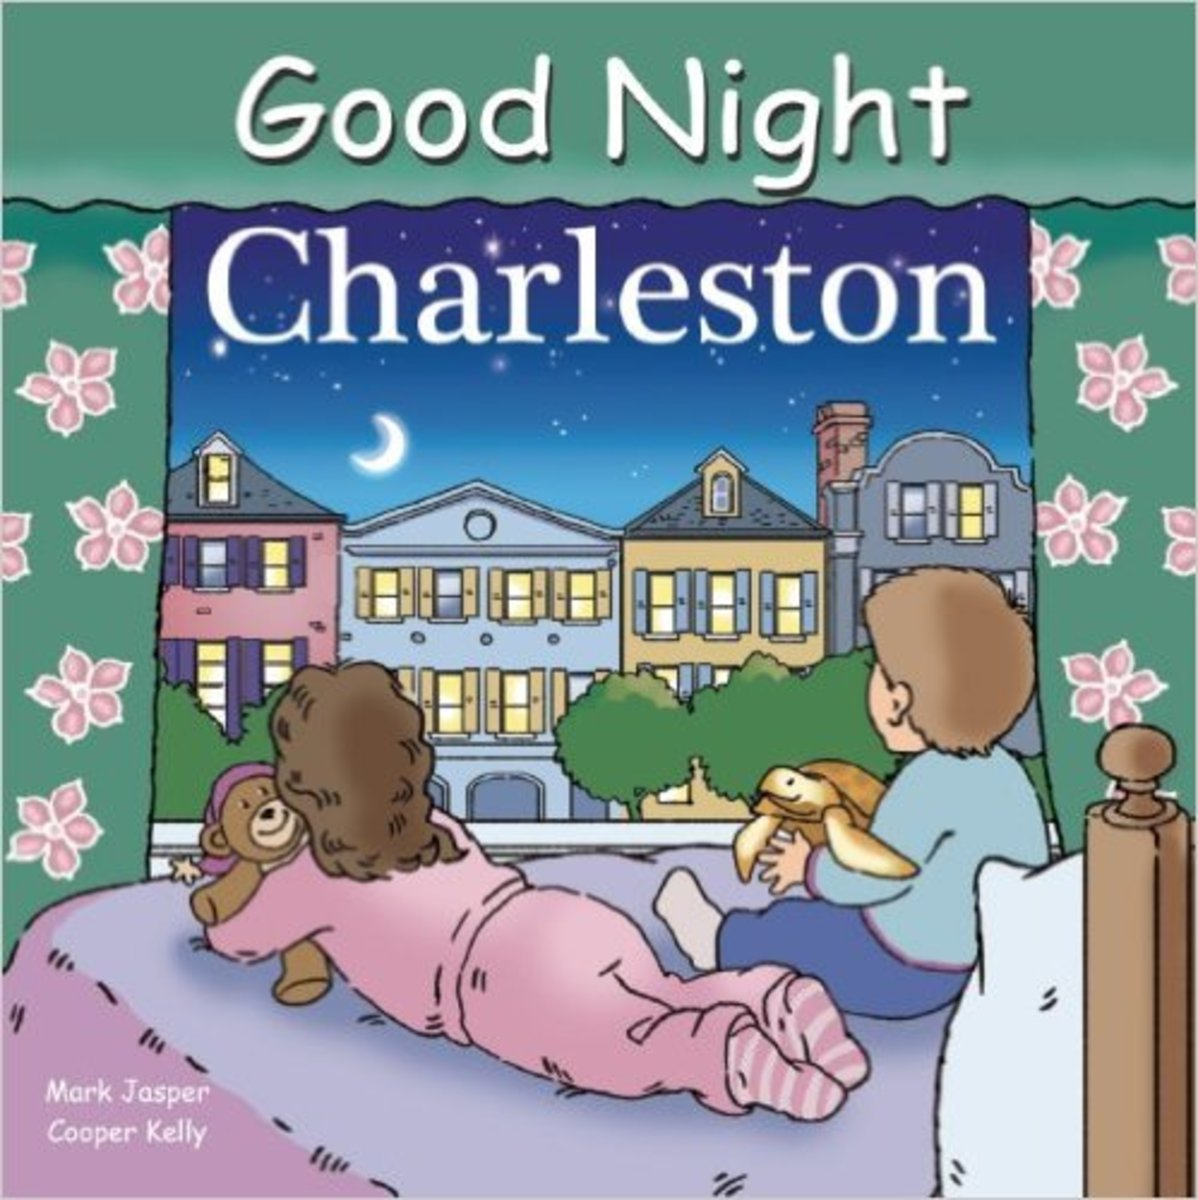 Good Night Charleston (Good Night Our World) Board book by Mark Jasper - All images are from amazon.com.